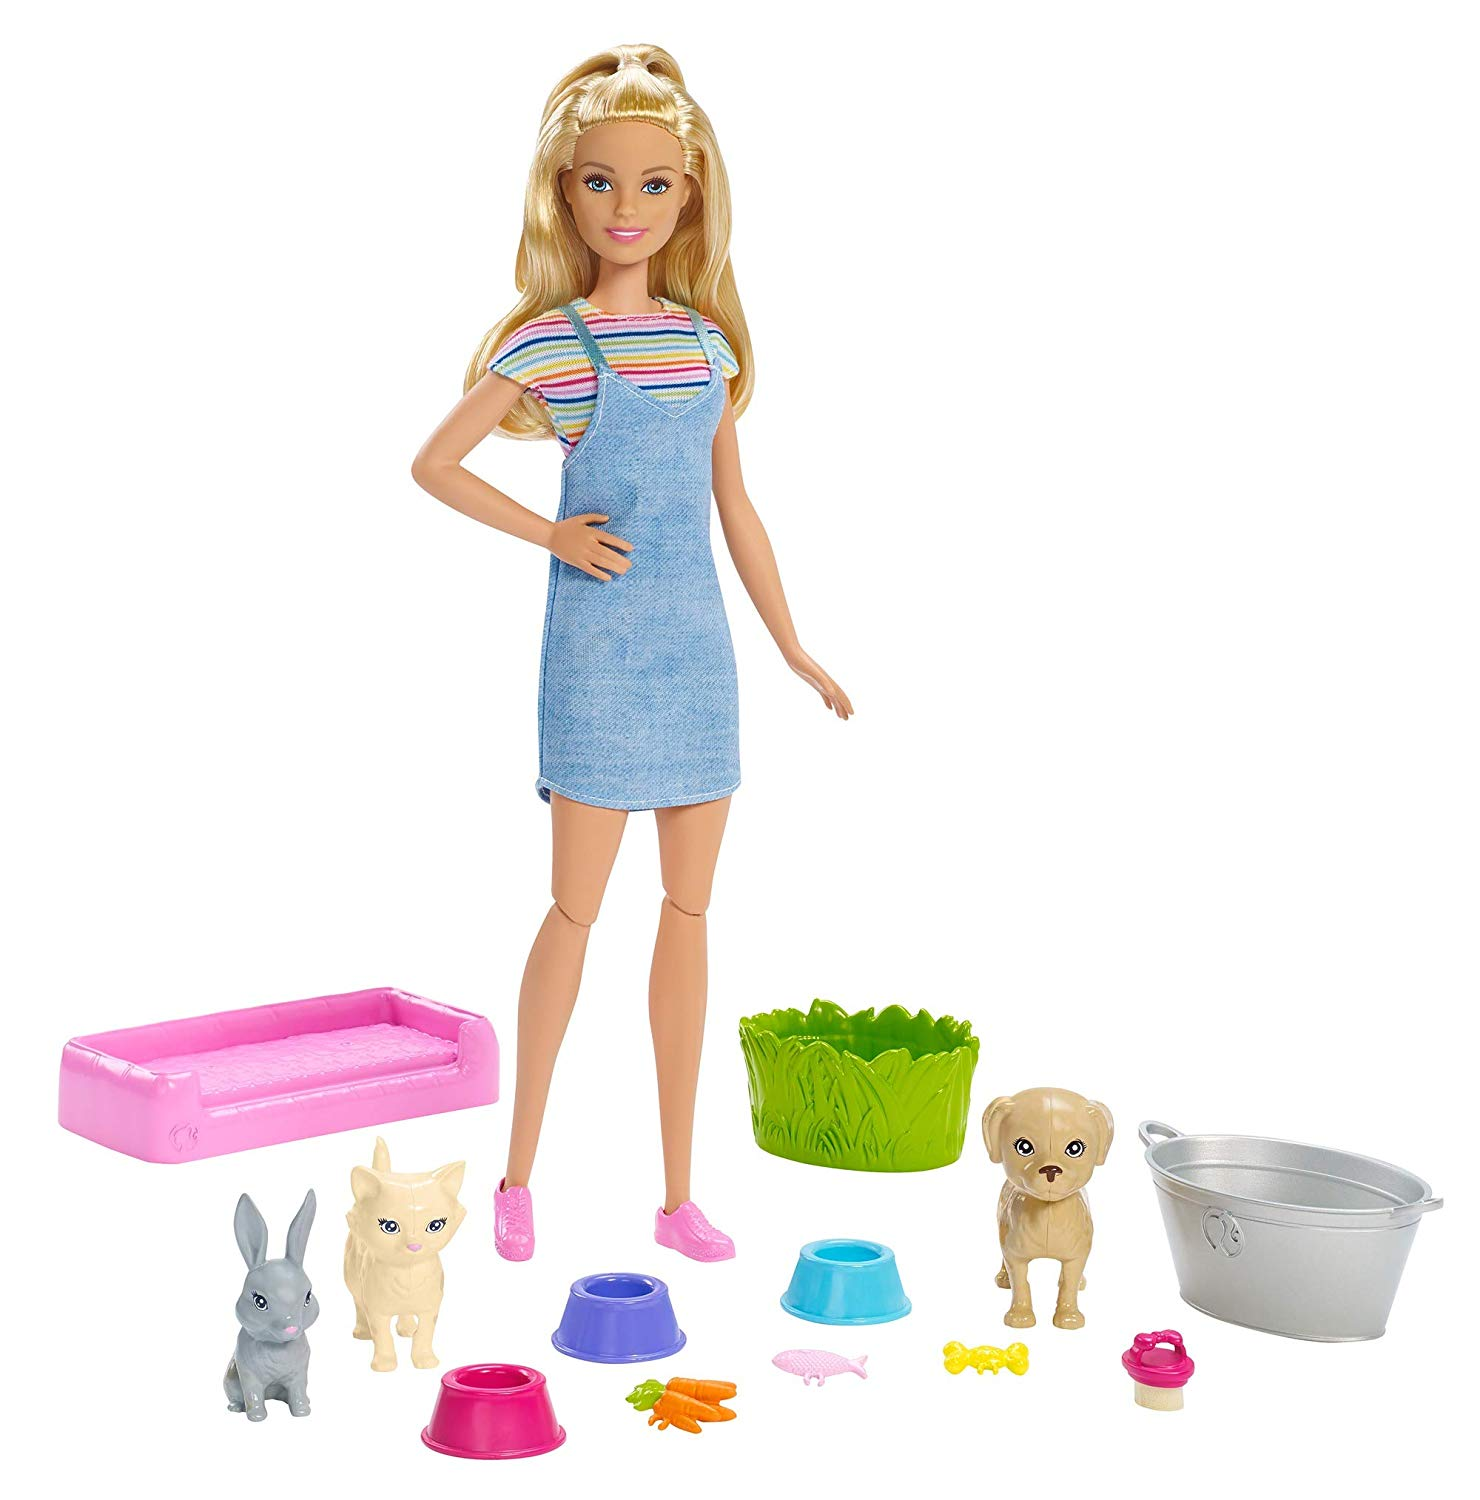 Barbie - Play 'n' Wash Pets Doll and Playset (FXH11)